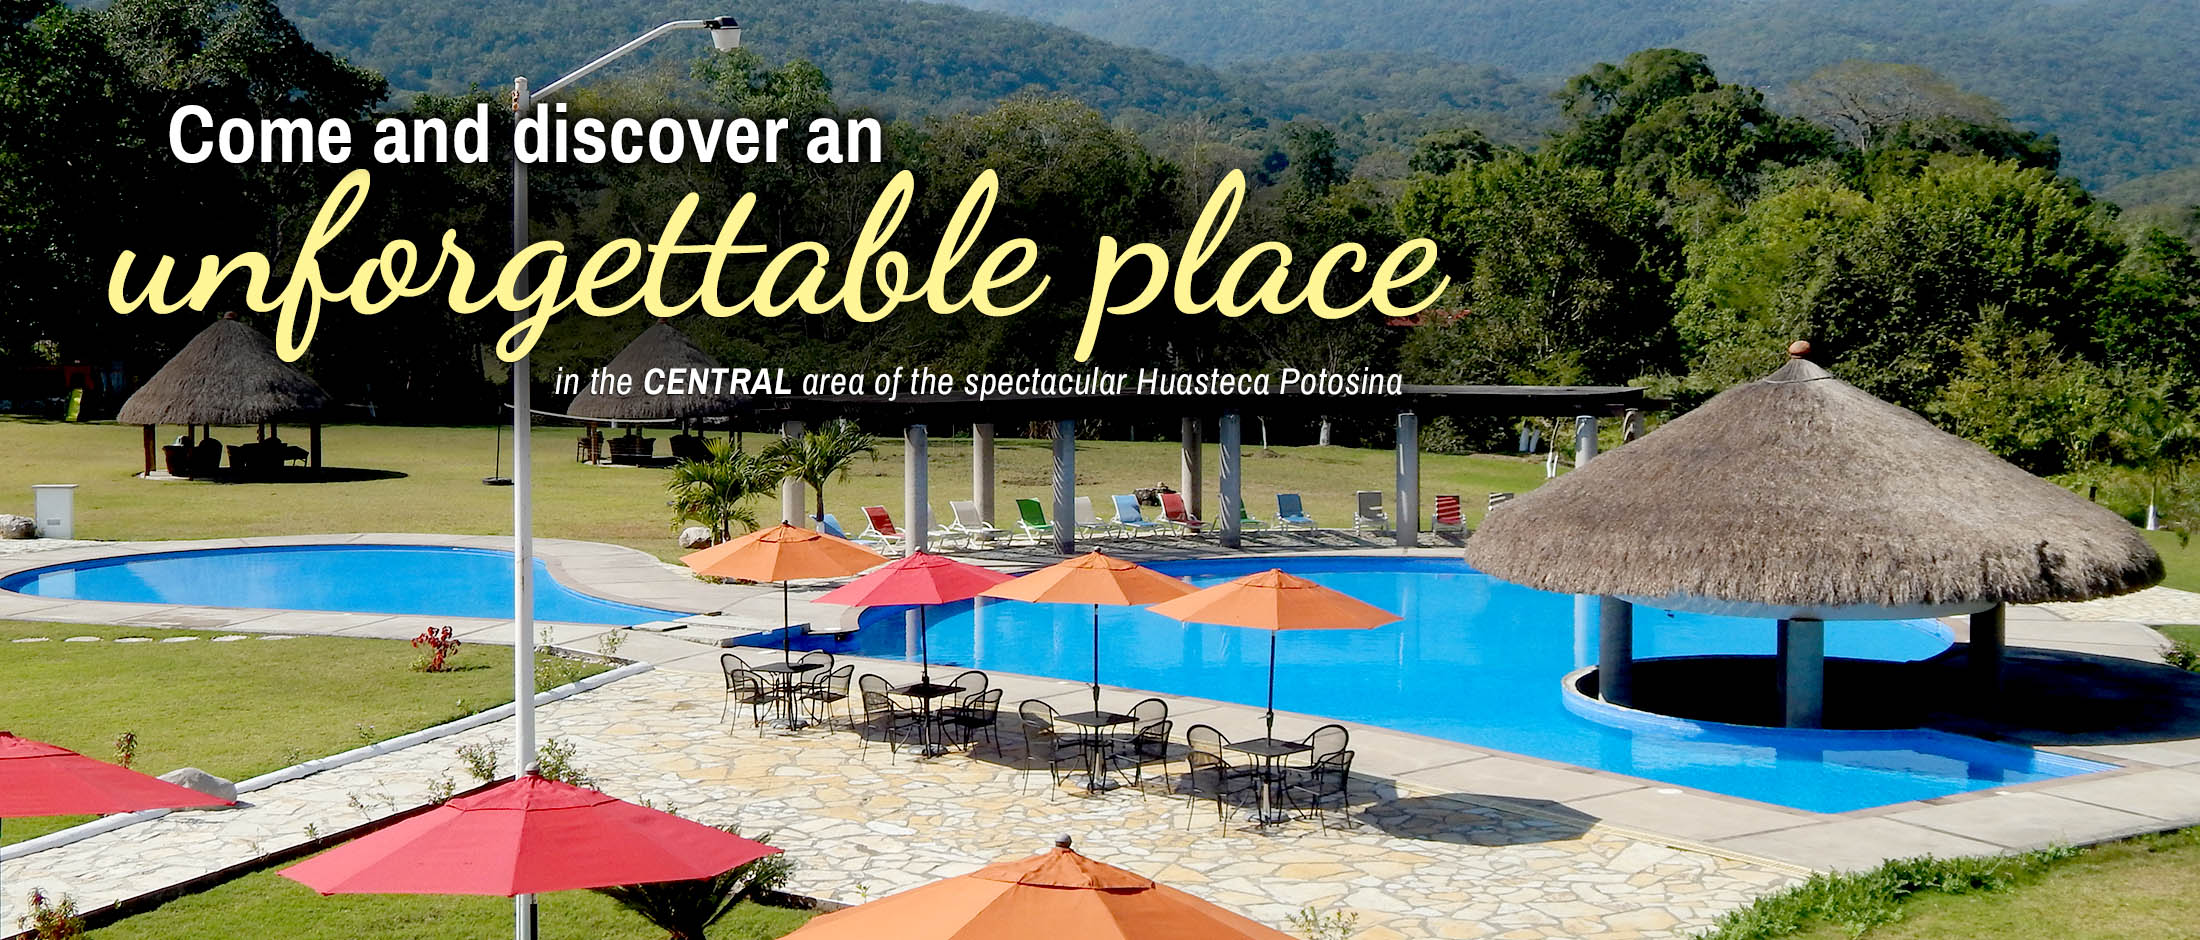 Hotel Real Tamasopo - Come and discover an unforgettable place in the central area of the spectacular Huasteca Potosina